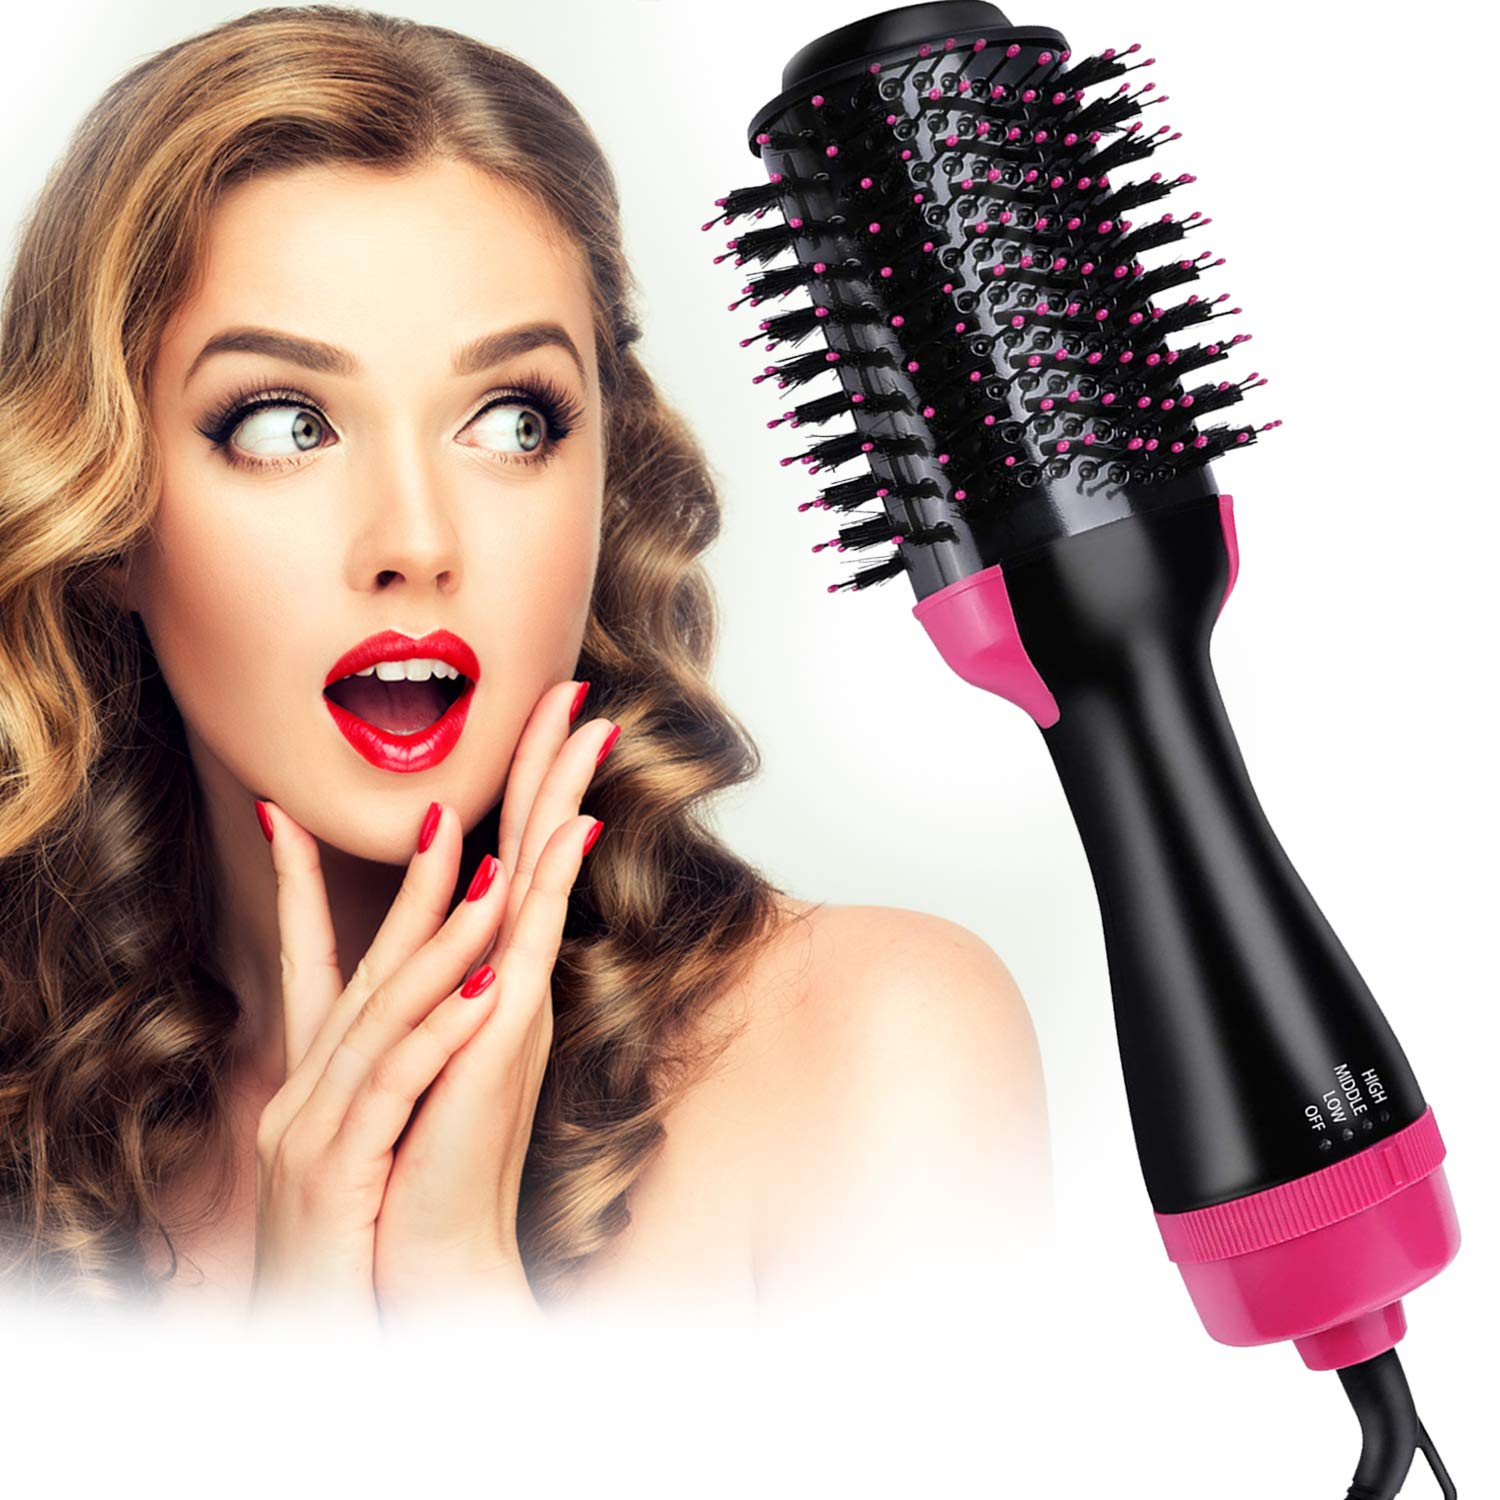 Hot Air Brush 4 IN 1 Hair Dryer Brush,Electric One Step Hair Dryer & Volumizer & Styler,Salon Hair Straightener Static Suitable for All hair Anti-Scald by MAN NUO